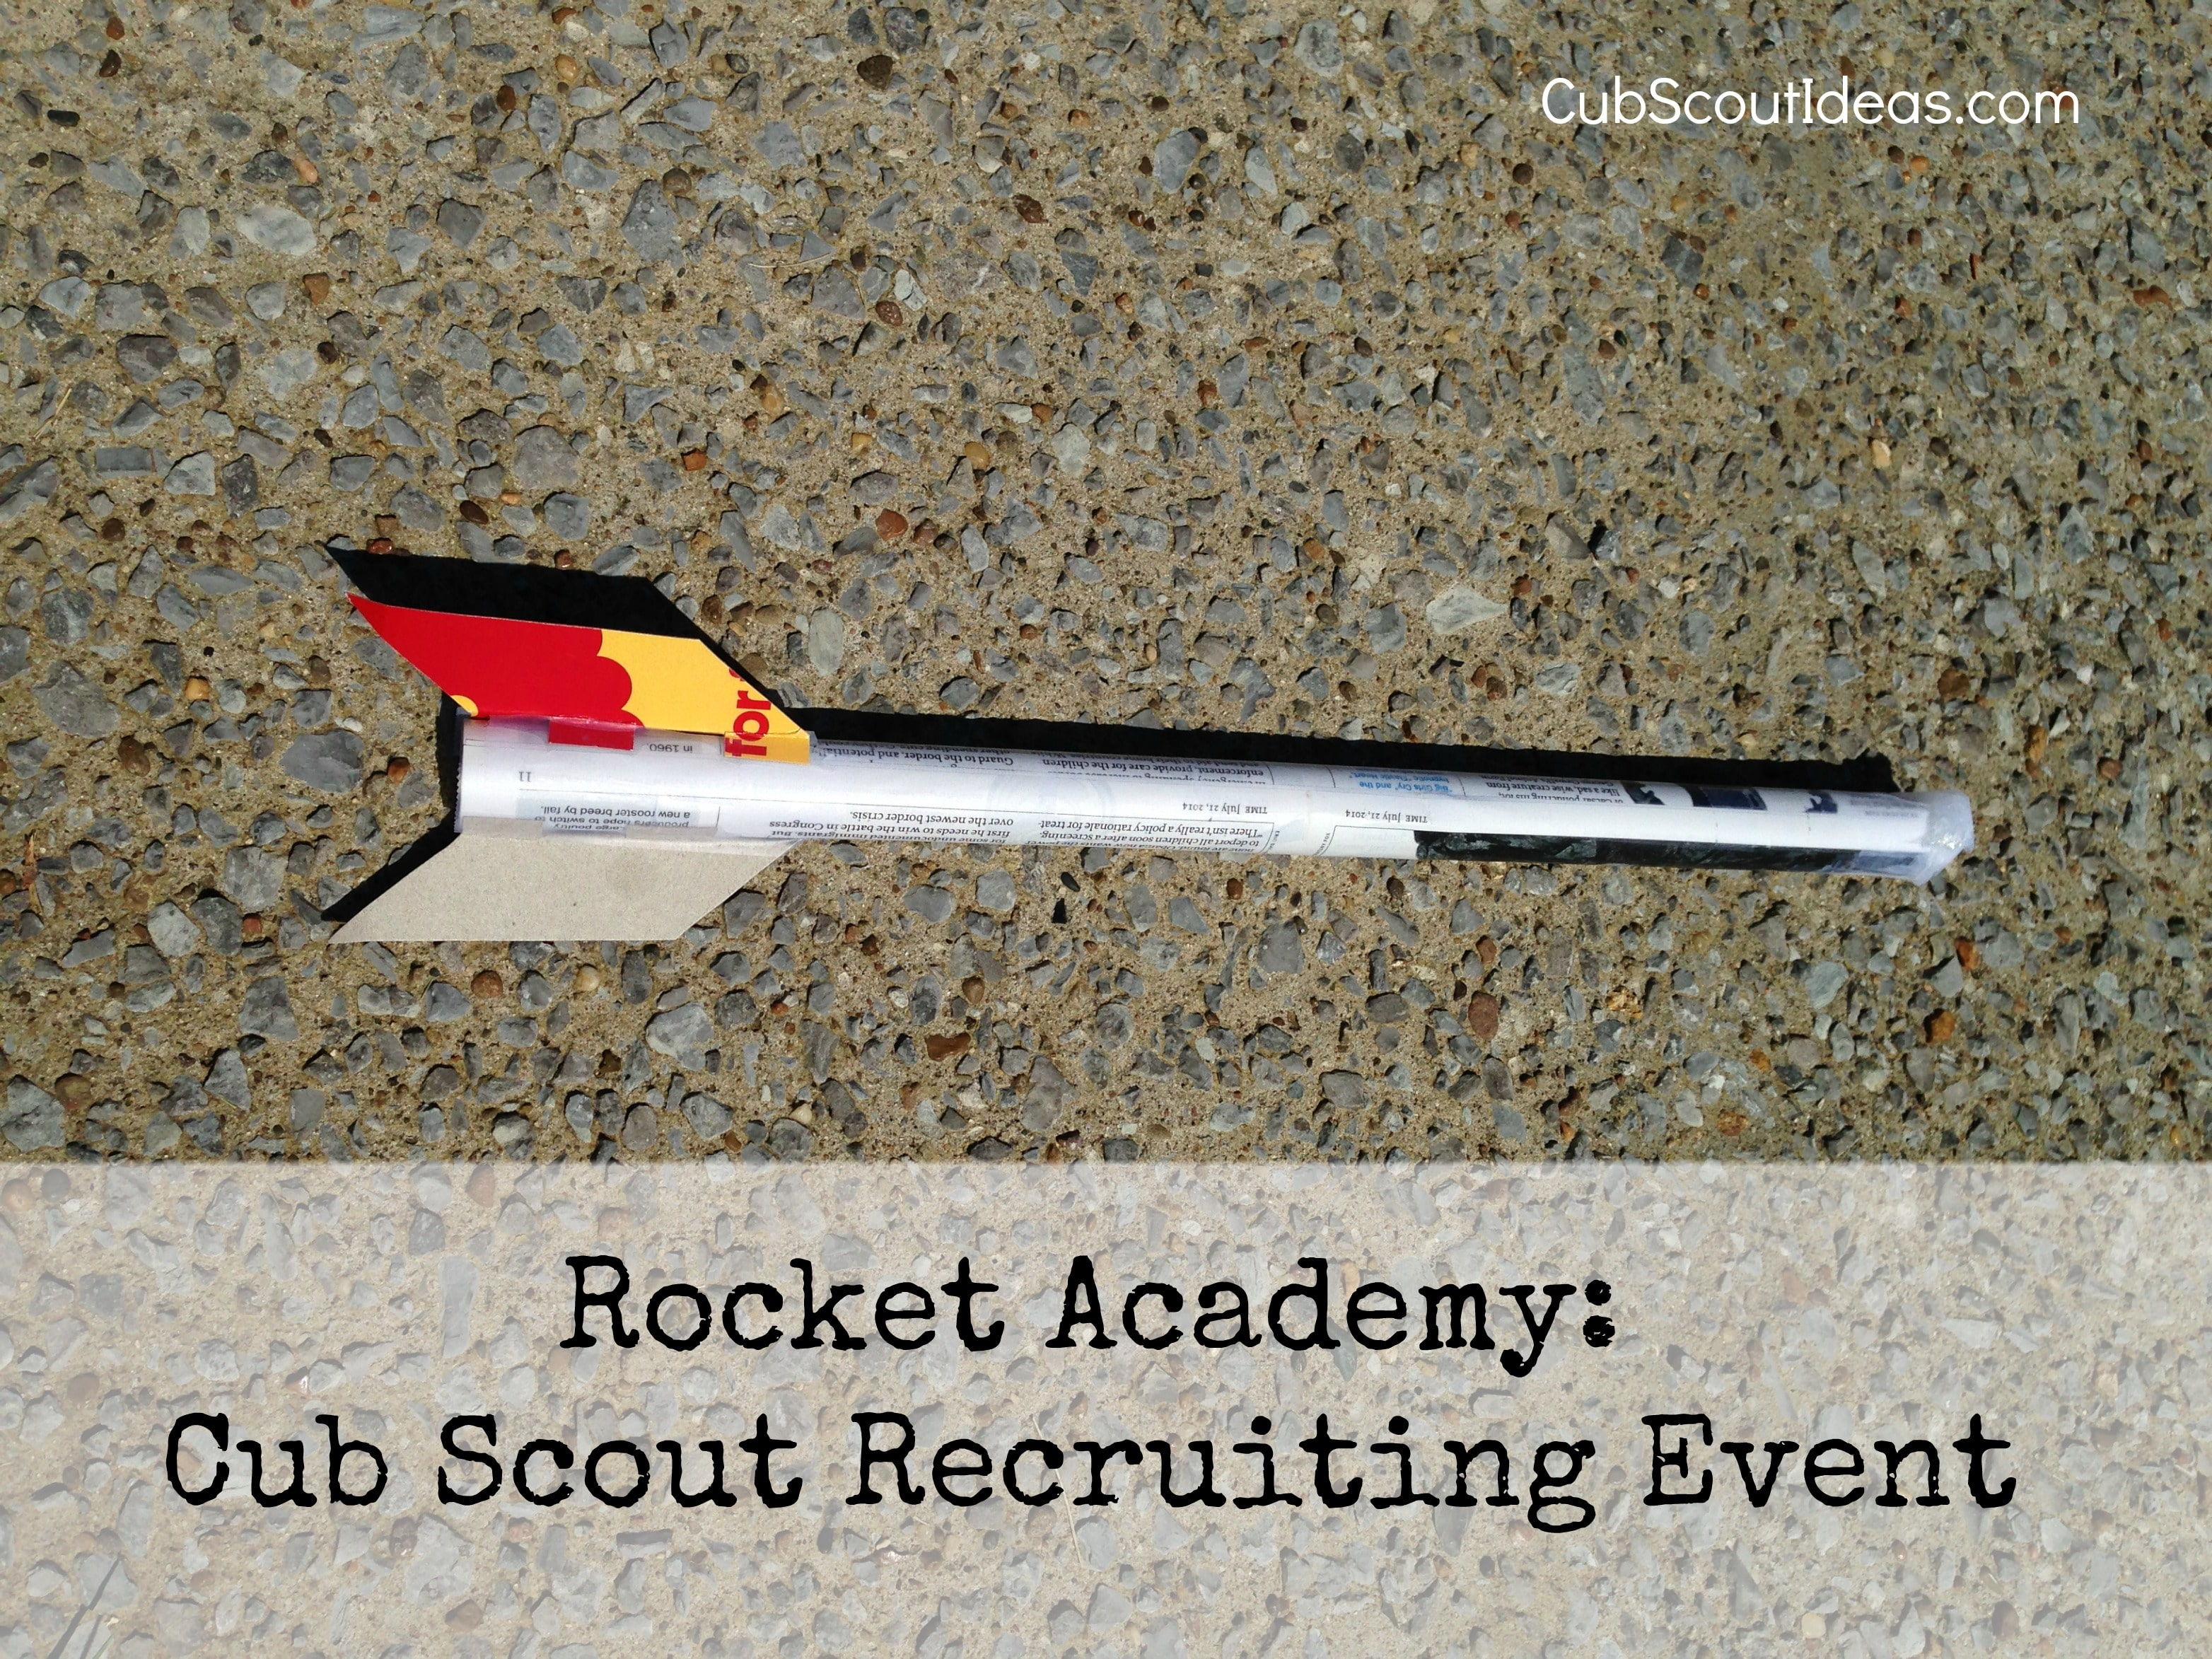 Rocket Academy:  Cub Scout Recruiting Event